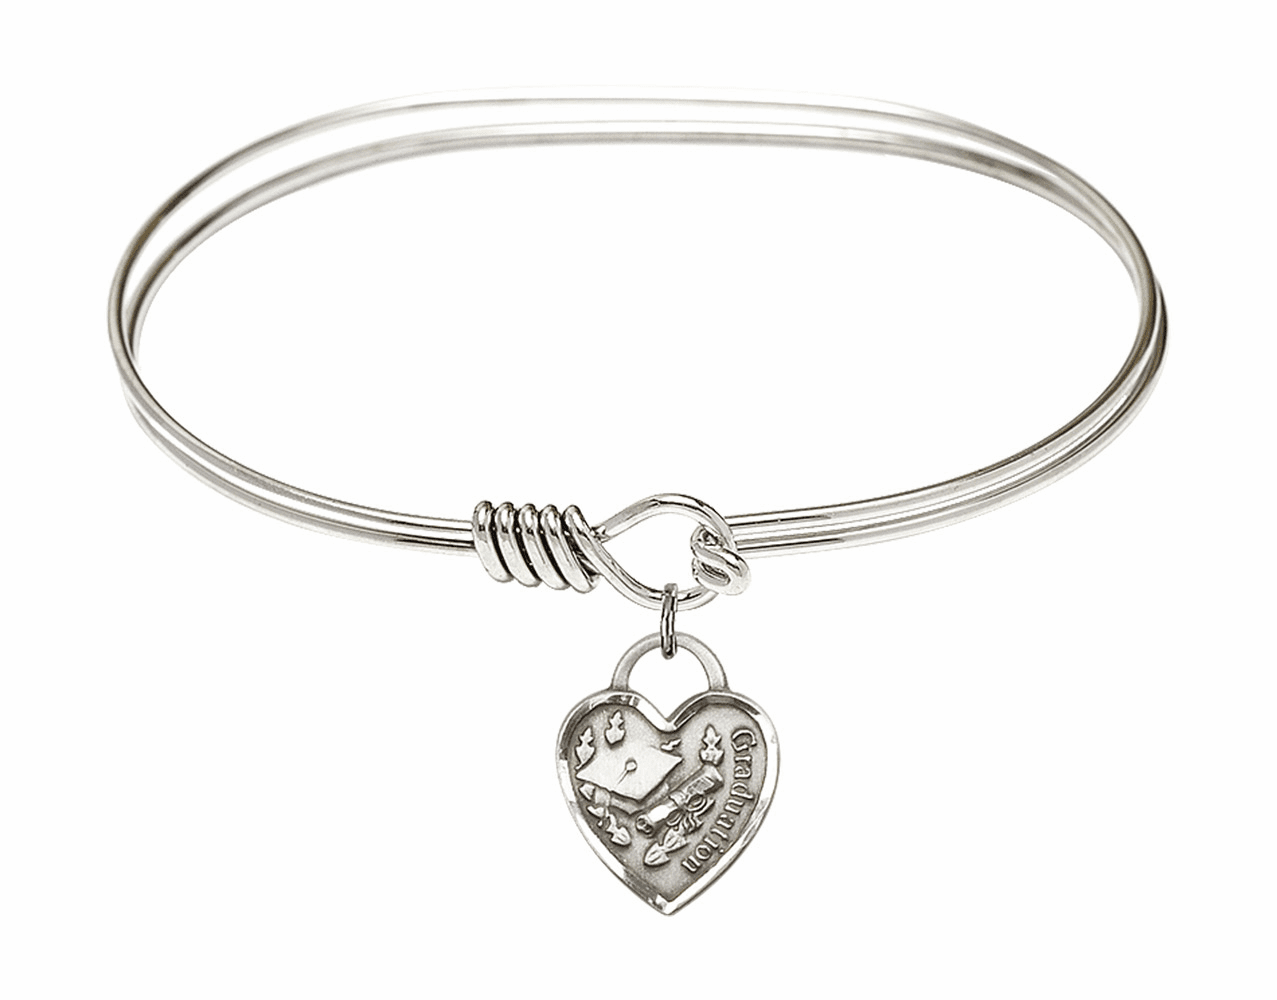 Round Eye Hook Bangle Bracelet w/Graduation Heart Sterling Silver Charm by Bliss Mfg